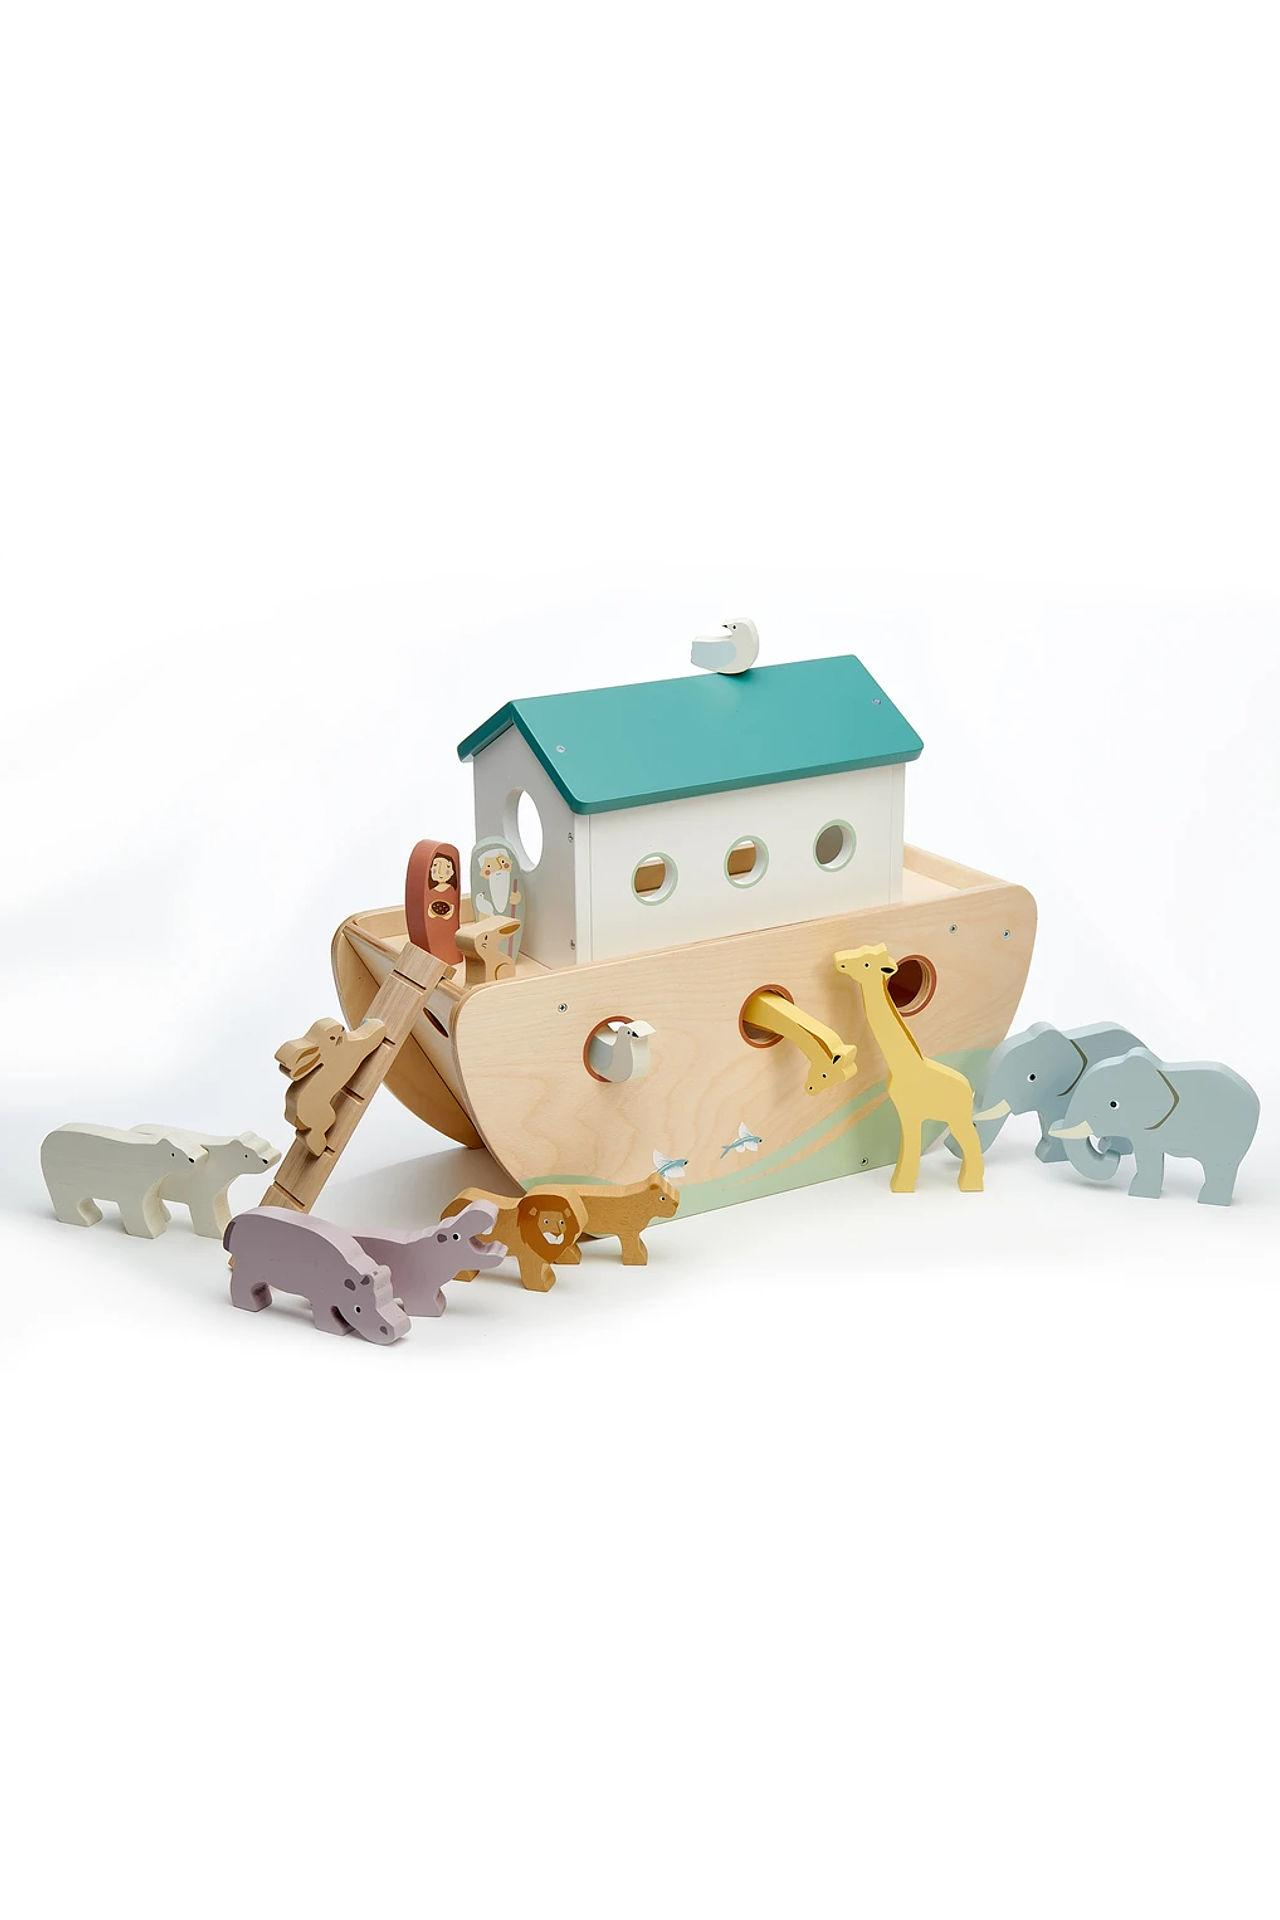 New Noah's Ark with 10 Pairs of Wooden Animals #6